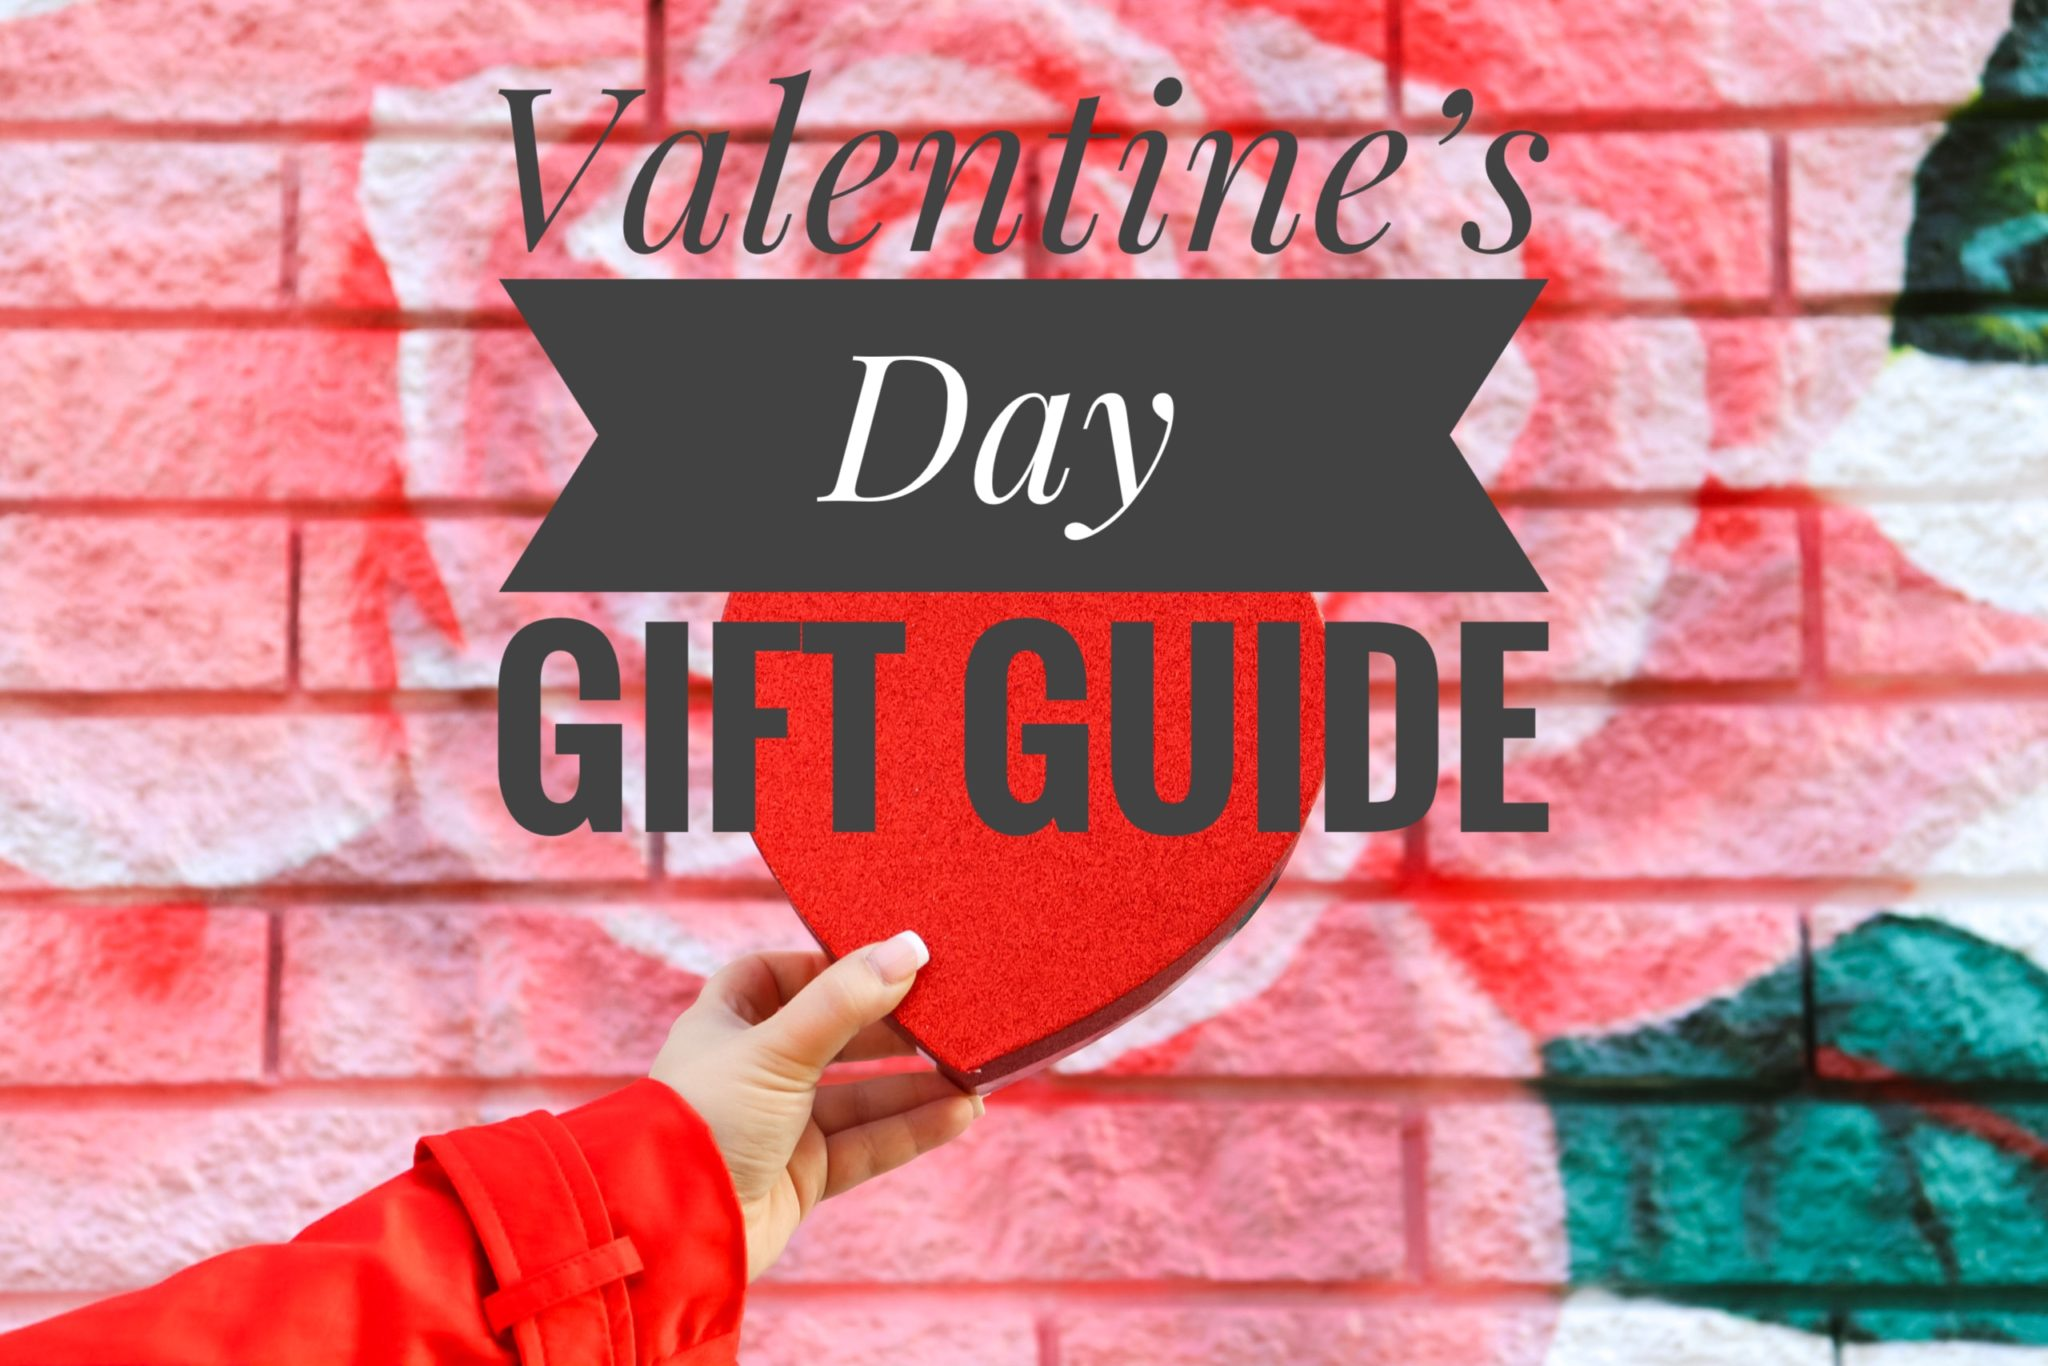 missyonmadison, missyonmadison blog, la blogger, missyonmadison instagram, vday gifts ideas, vday gifts, valentines gifts, valentines gifts 2020, valentines gift ideas, fashion blogger, style blogger, lifestyle blogger, valentines gift ideas, gift ideas for all, gifts for vday,